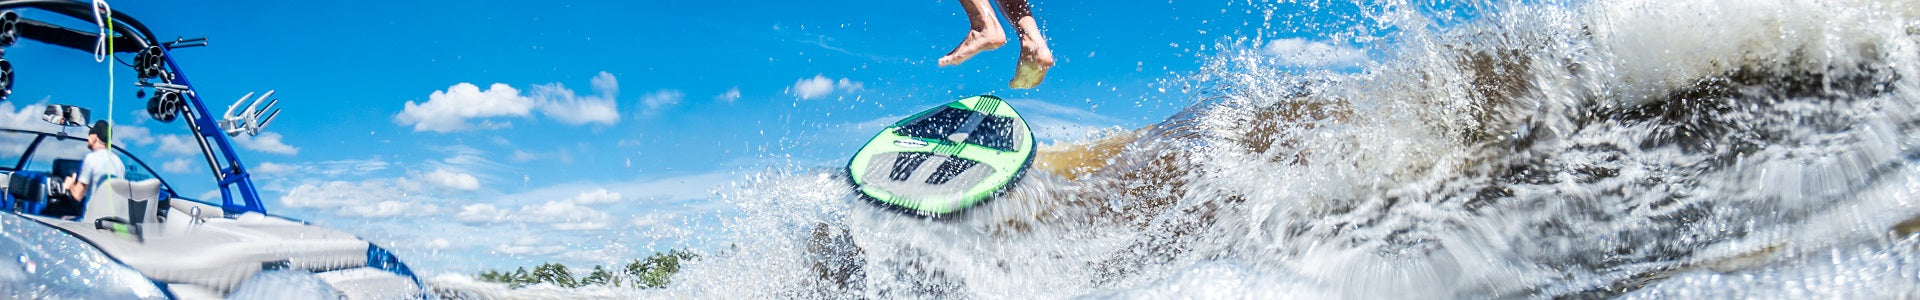 Surf Page Banner - Spin